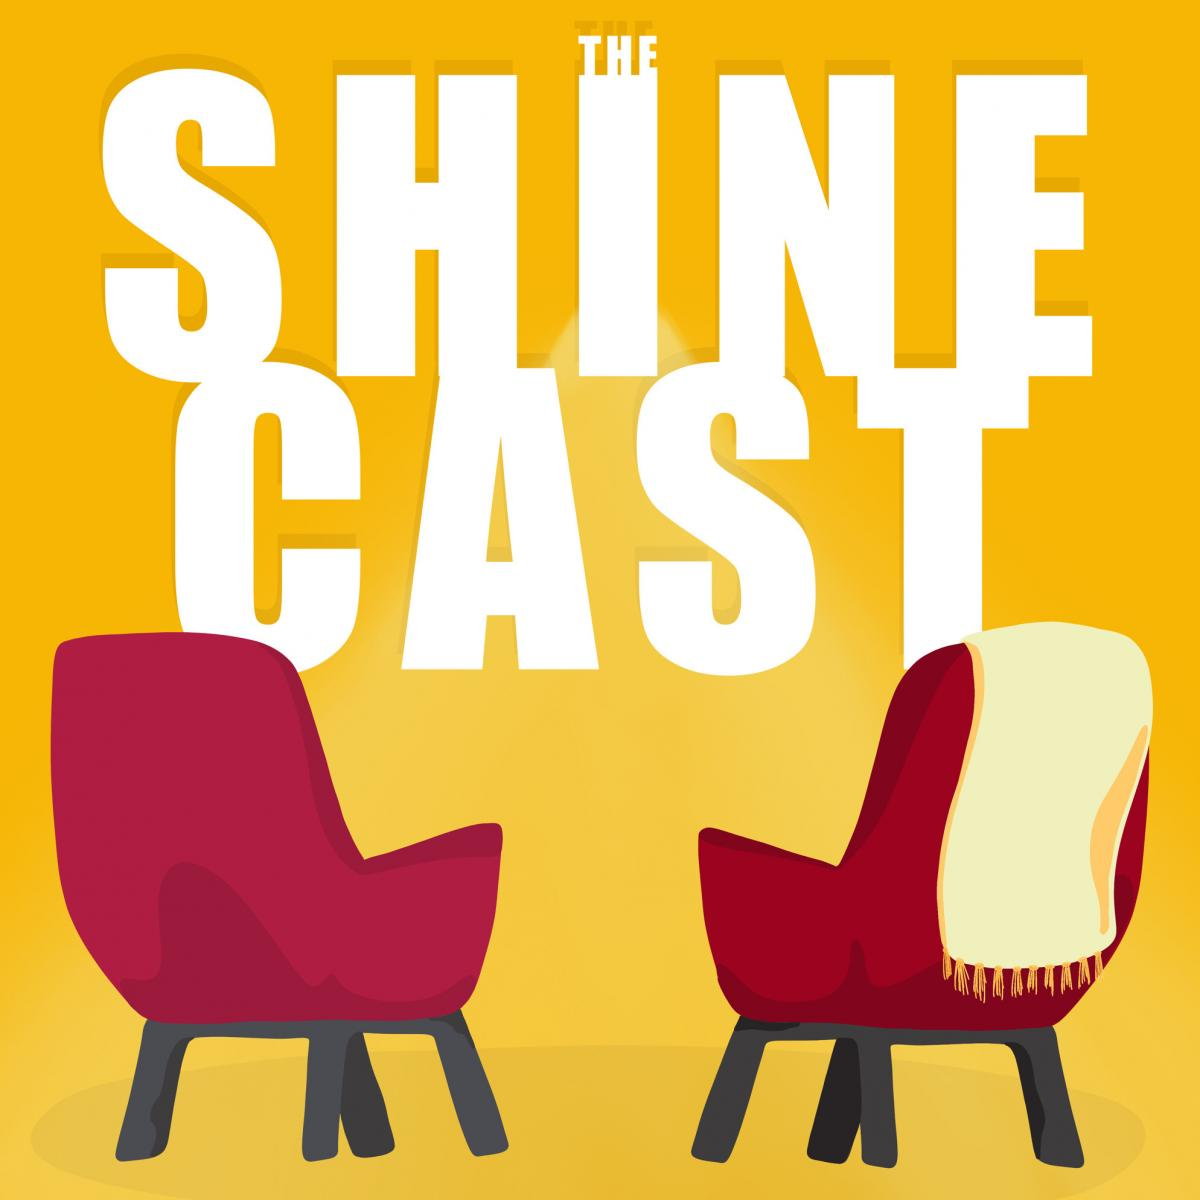 main graphic/image for The Shine Cast podcast